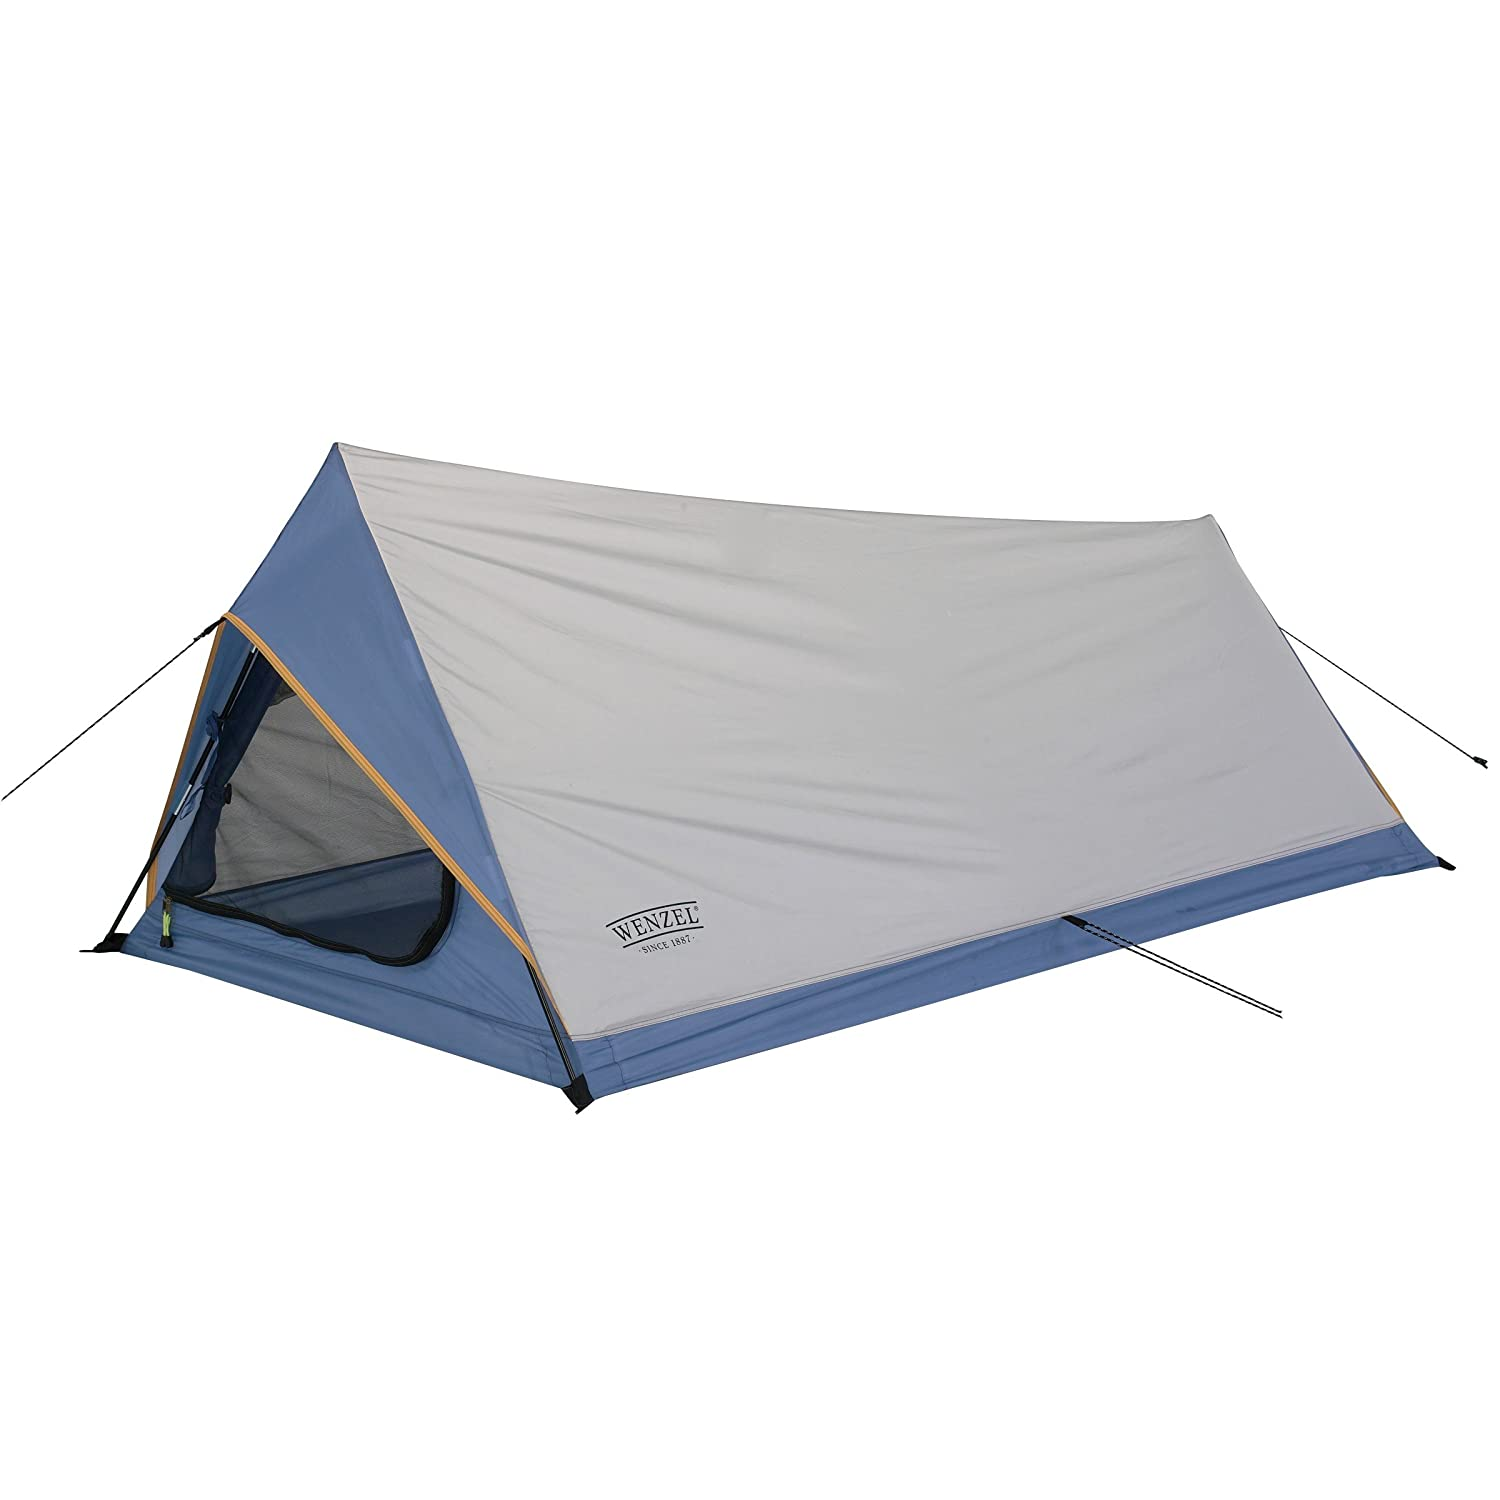 Wenzel Current 2-Person Tent. A lightweight ...  sc 1 st  expertbackpacker.com & Best Backpacking Tent Under 50 Dollars | expertbackpacker.com